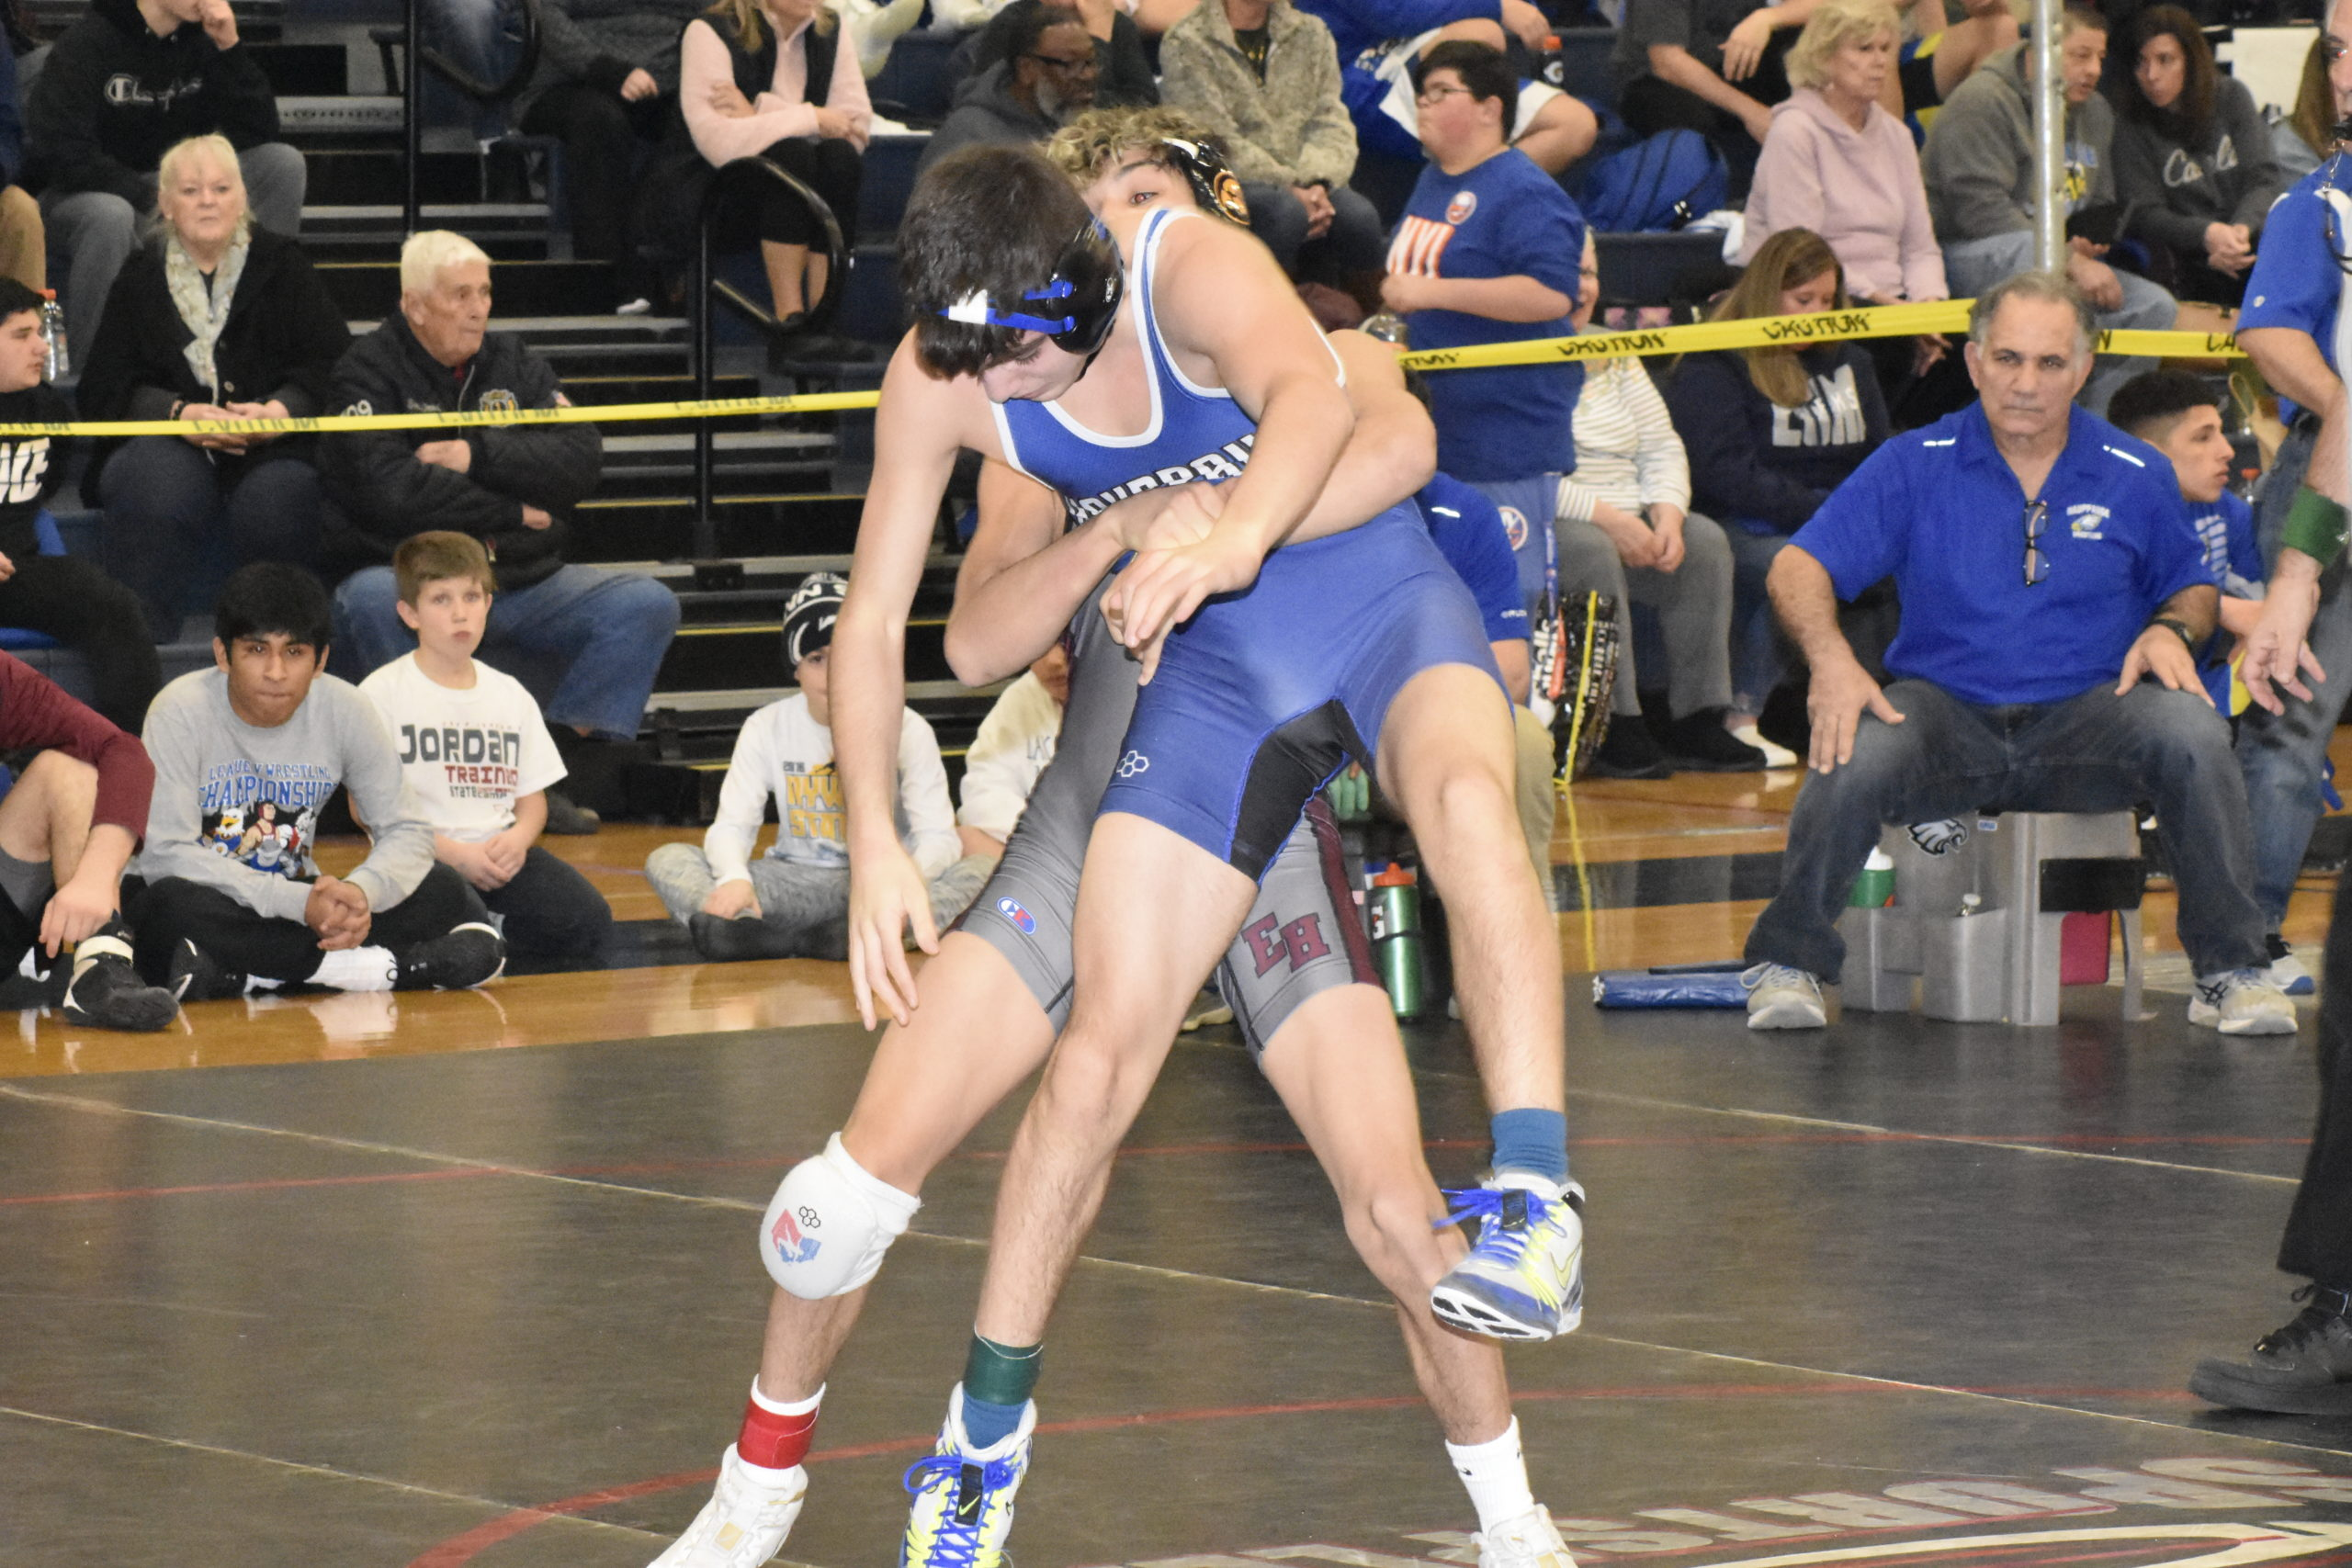 East Hampton's Santi Maya battles with Hauppauge's Frank Volpe in the semifinals.